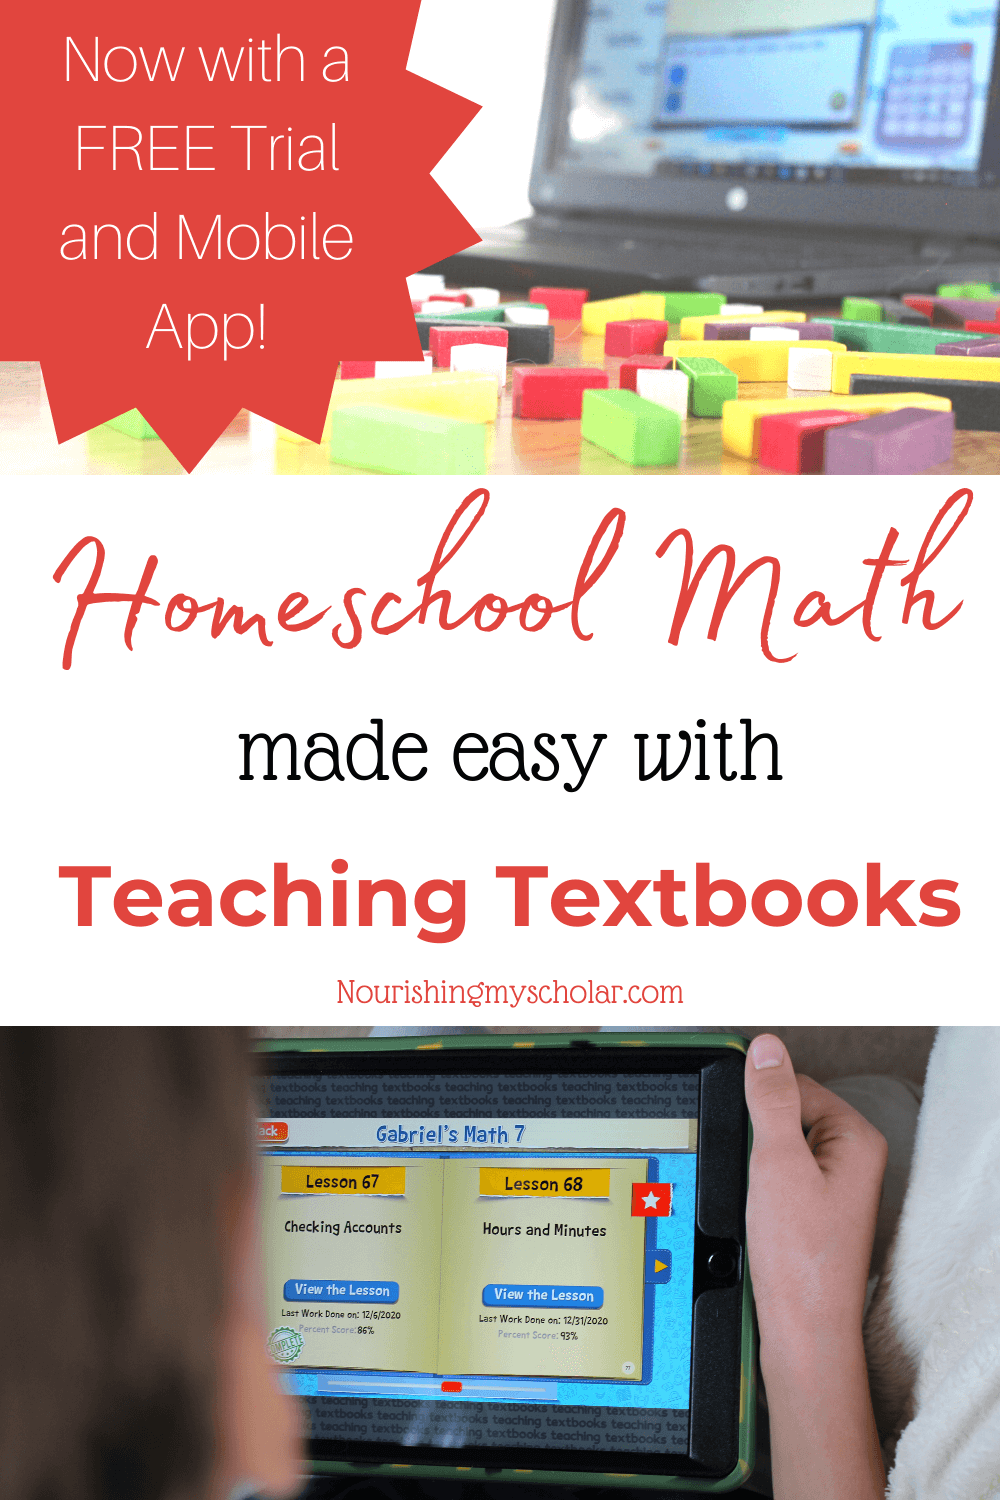 Homeschool Math made Easy with Teaching Textbooks: Homeschool math is now easier than ever with Teaching Textbooks! No longer do homeschool parents need to fear math or worry that they don't know enough to teach their child. Teaching Textbooks does it all for you in an engaging and effective way. Leaving you free to focus on other subjects! Here is a look at how we are using this math resource in our homeschool. #homeschoolmath #teachingtextbooks #homeschoolmathcurriculum #mathresource